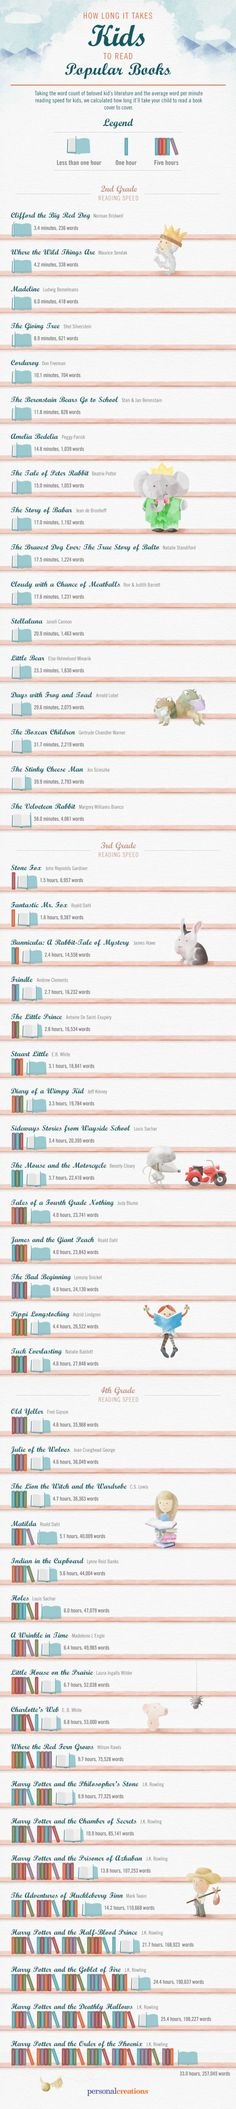 How Long It Takes Kids to Read These Popular Children's Books